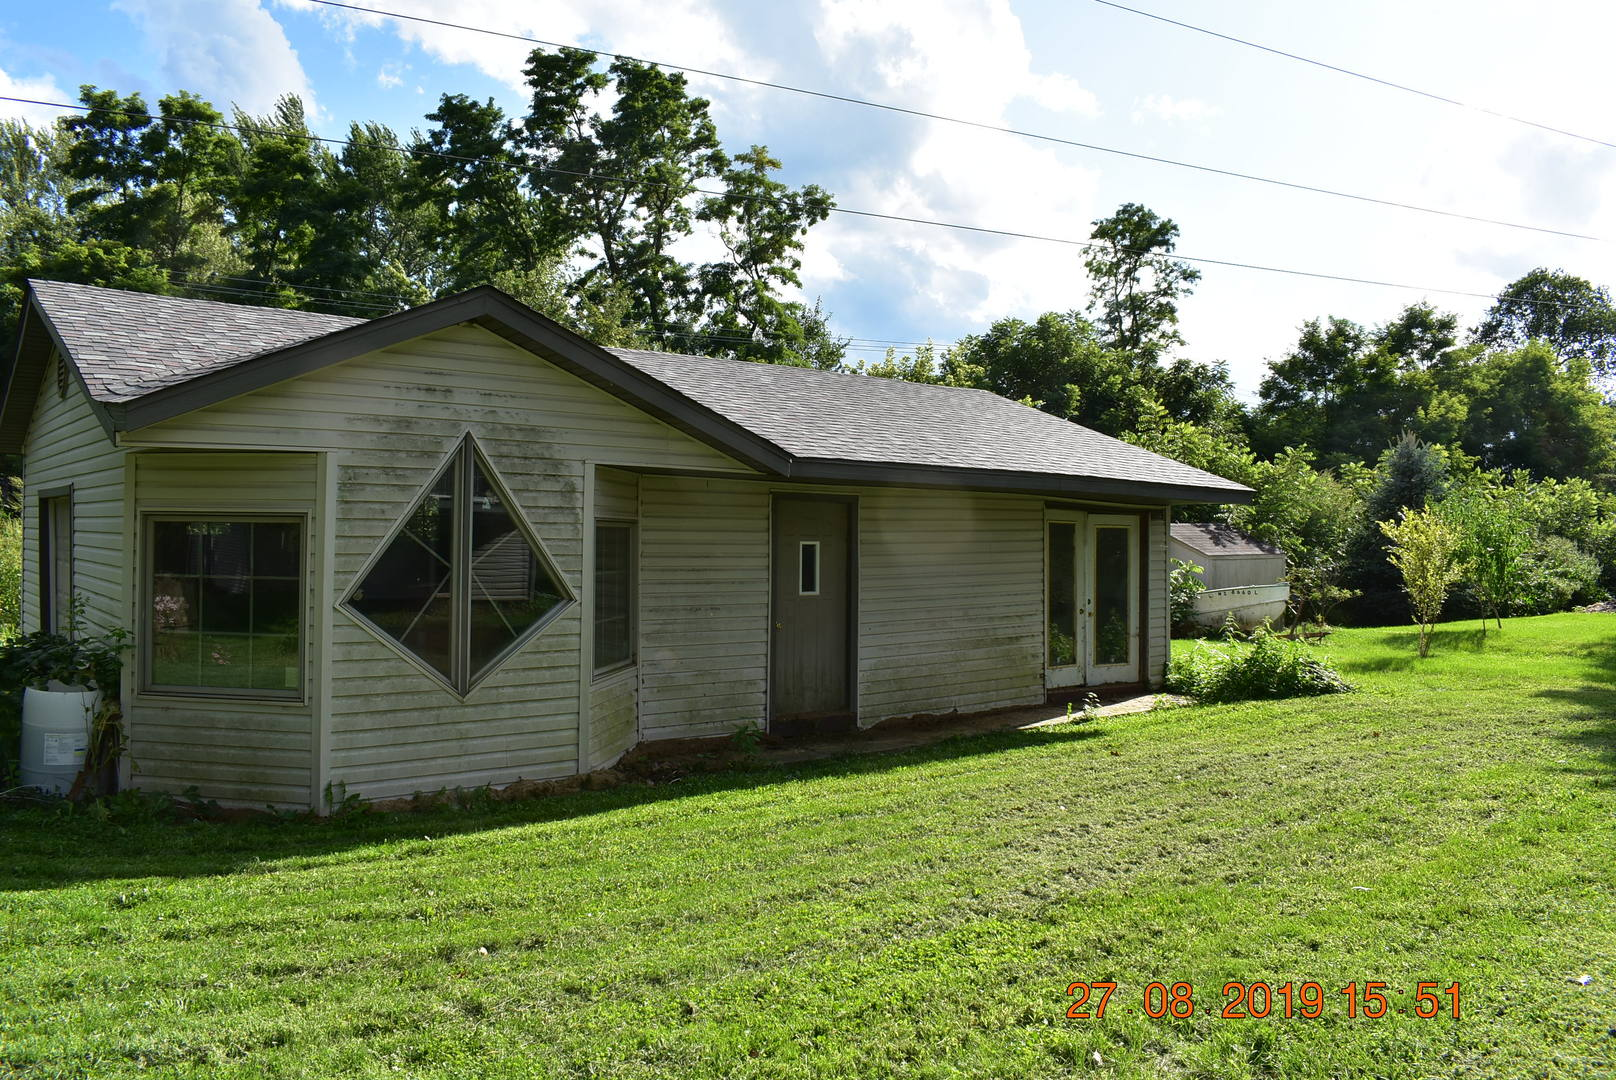 207 Bluff ,Winnebago, Illinois 61088